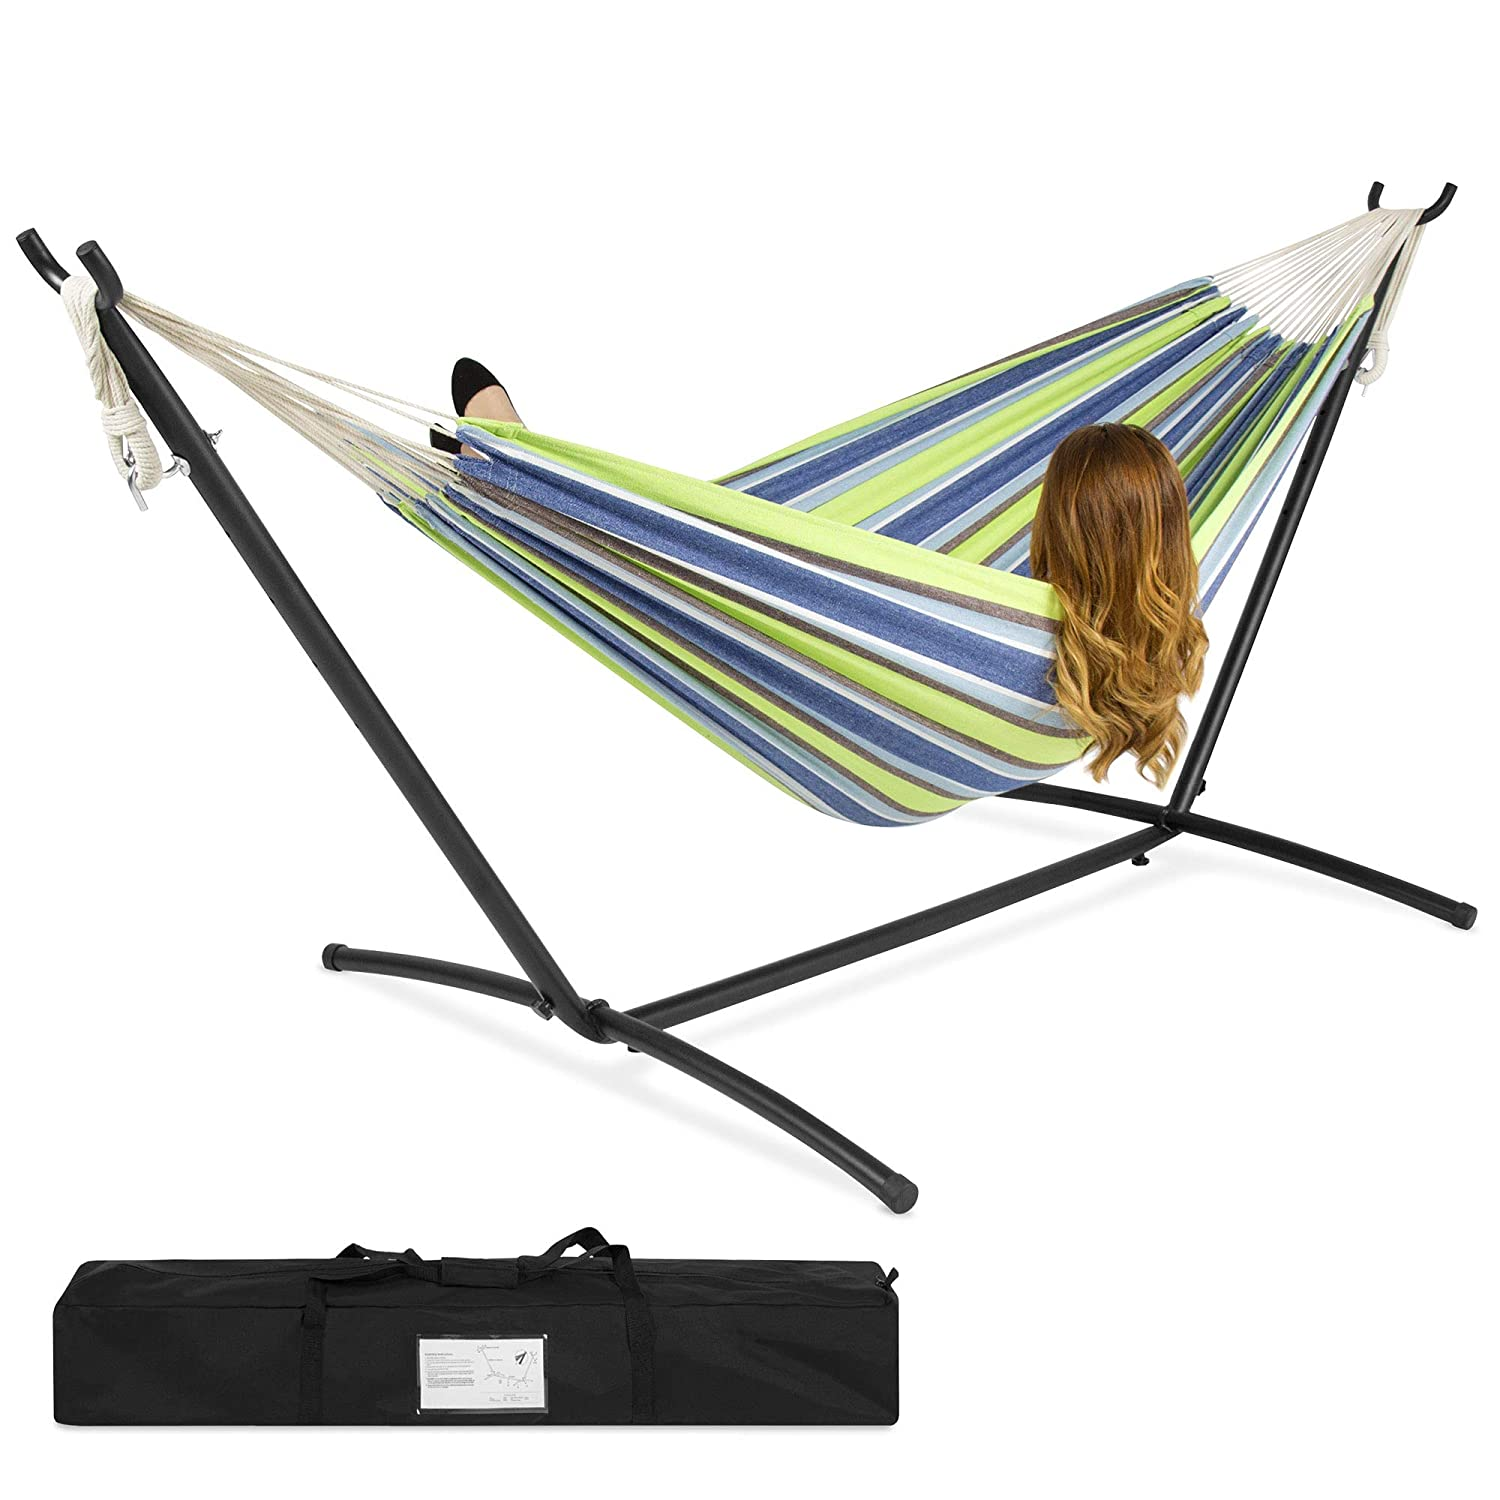 439eb814b37 Amazon.com : Best ChoiceProducts Double Hammock with Space Saving Steel  Stand Includes Portable Carrying Case : Garden & Outdoor